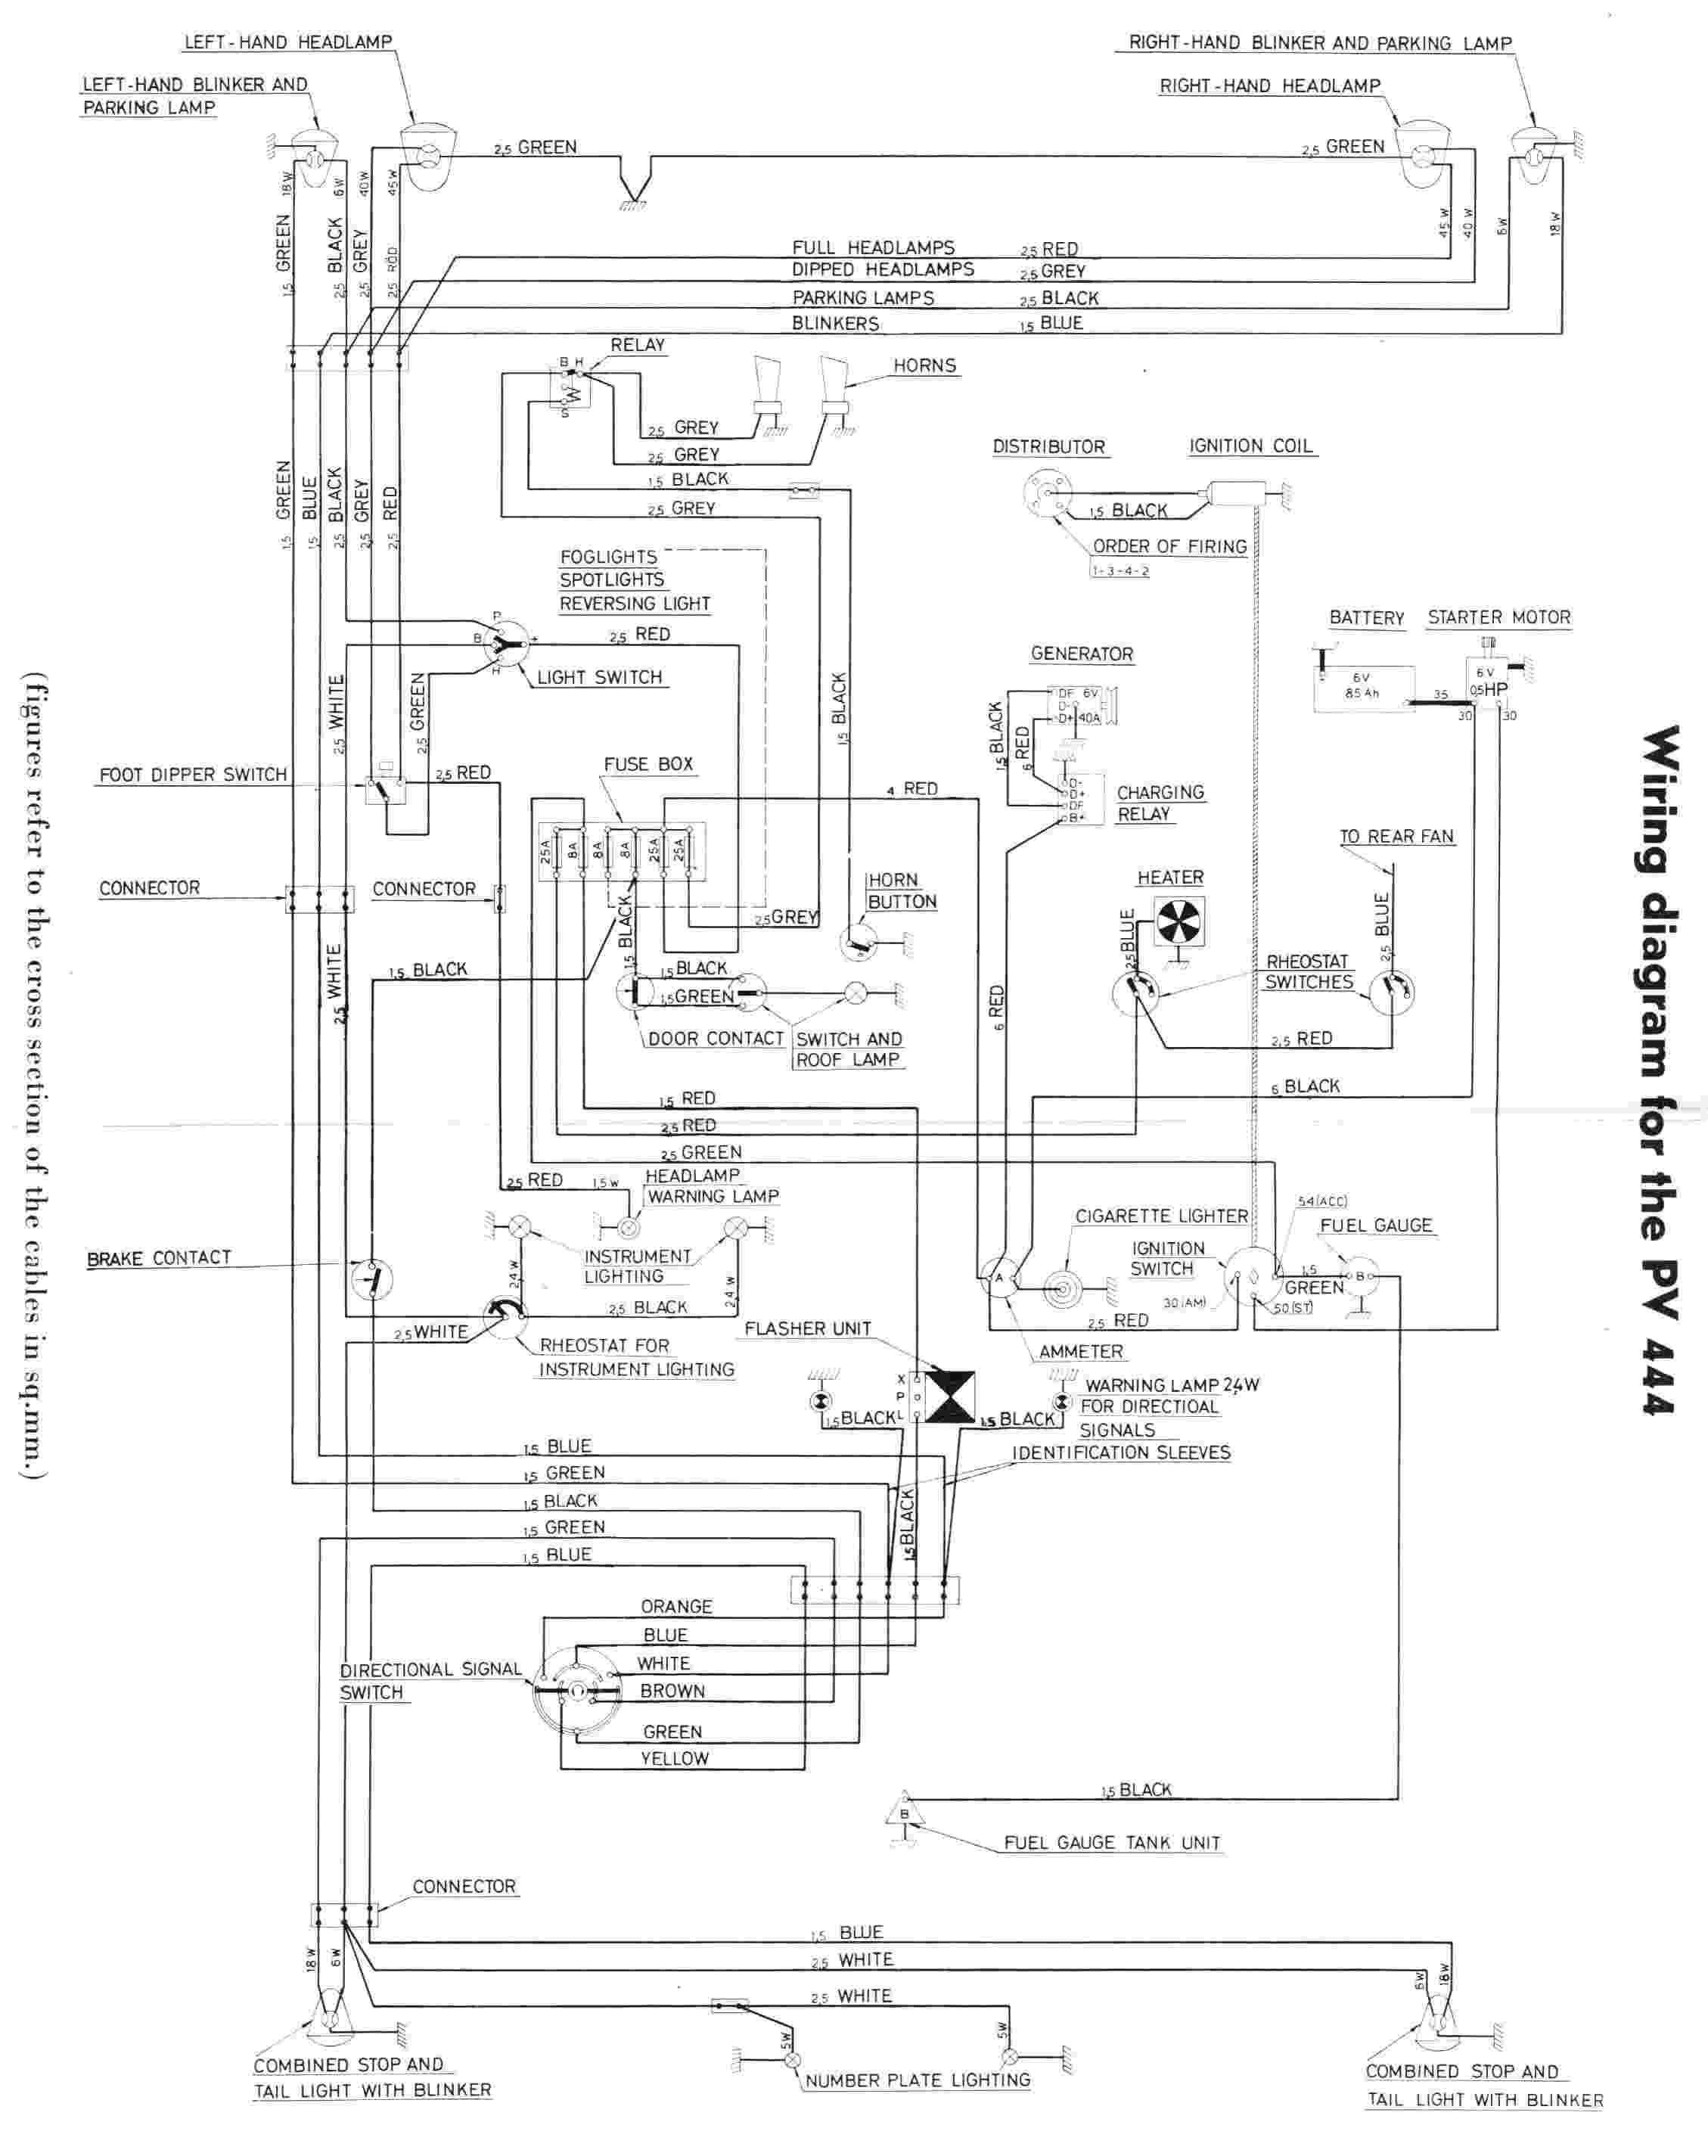 small resolution of wiring diagram oldsmobile wiring diagrams volvo wiring diagrams 1997 volvo v70 electrical diagram volvo amazon wiring diagram